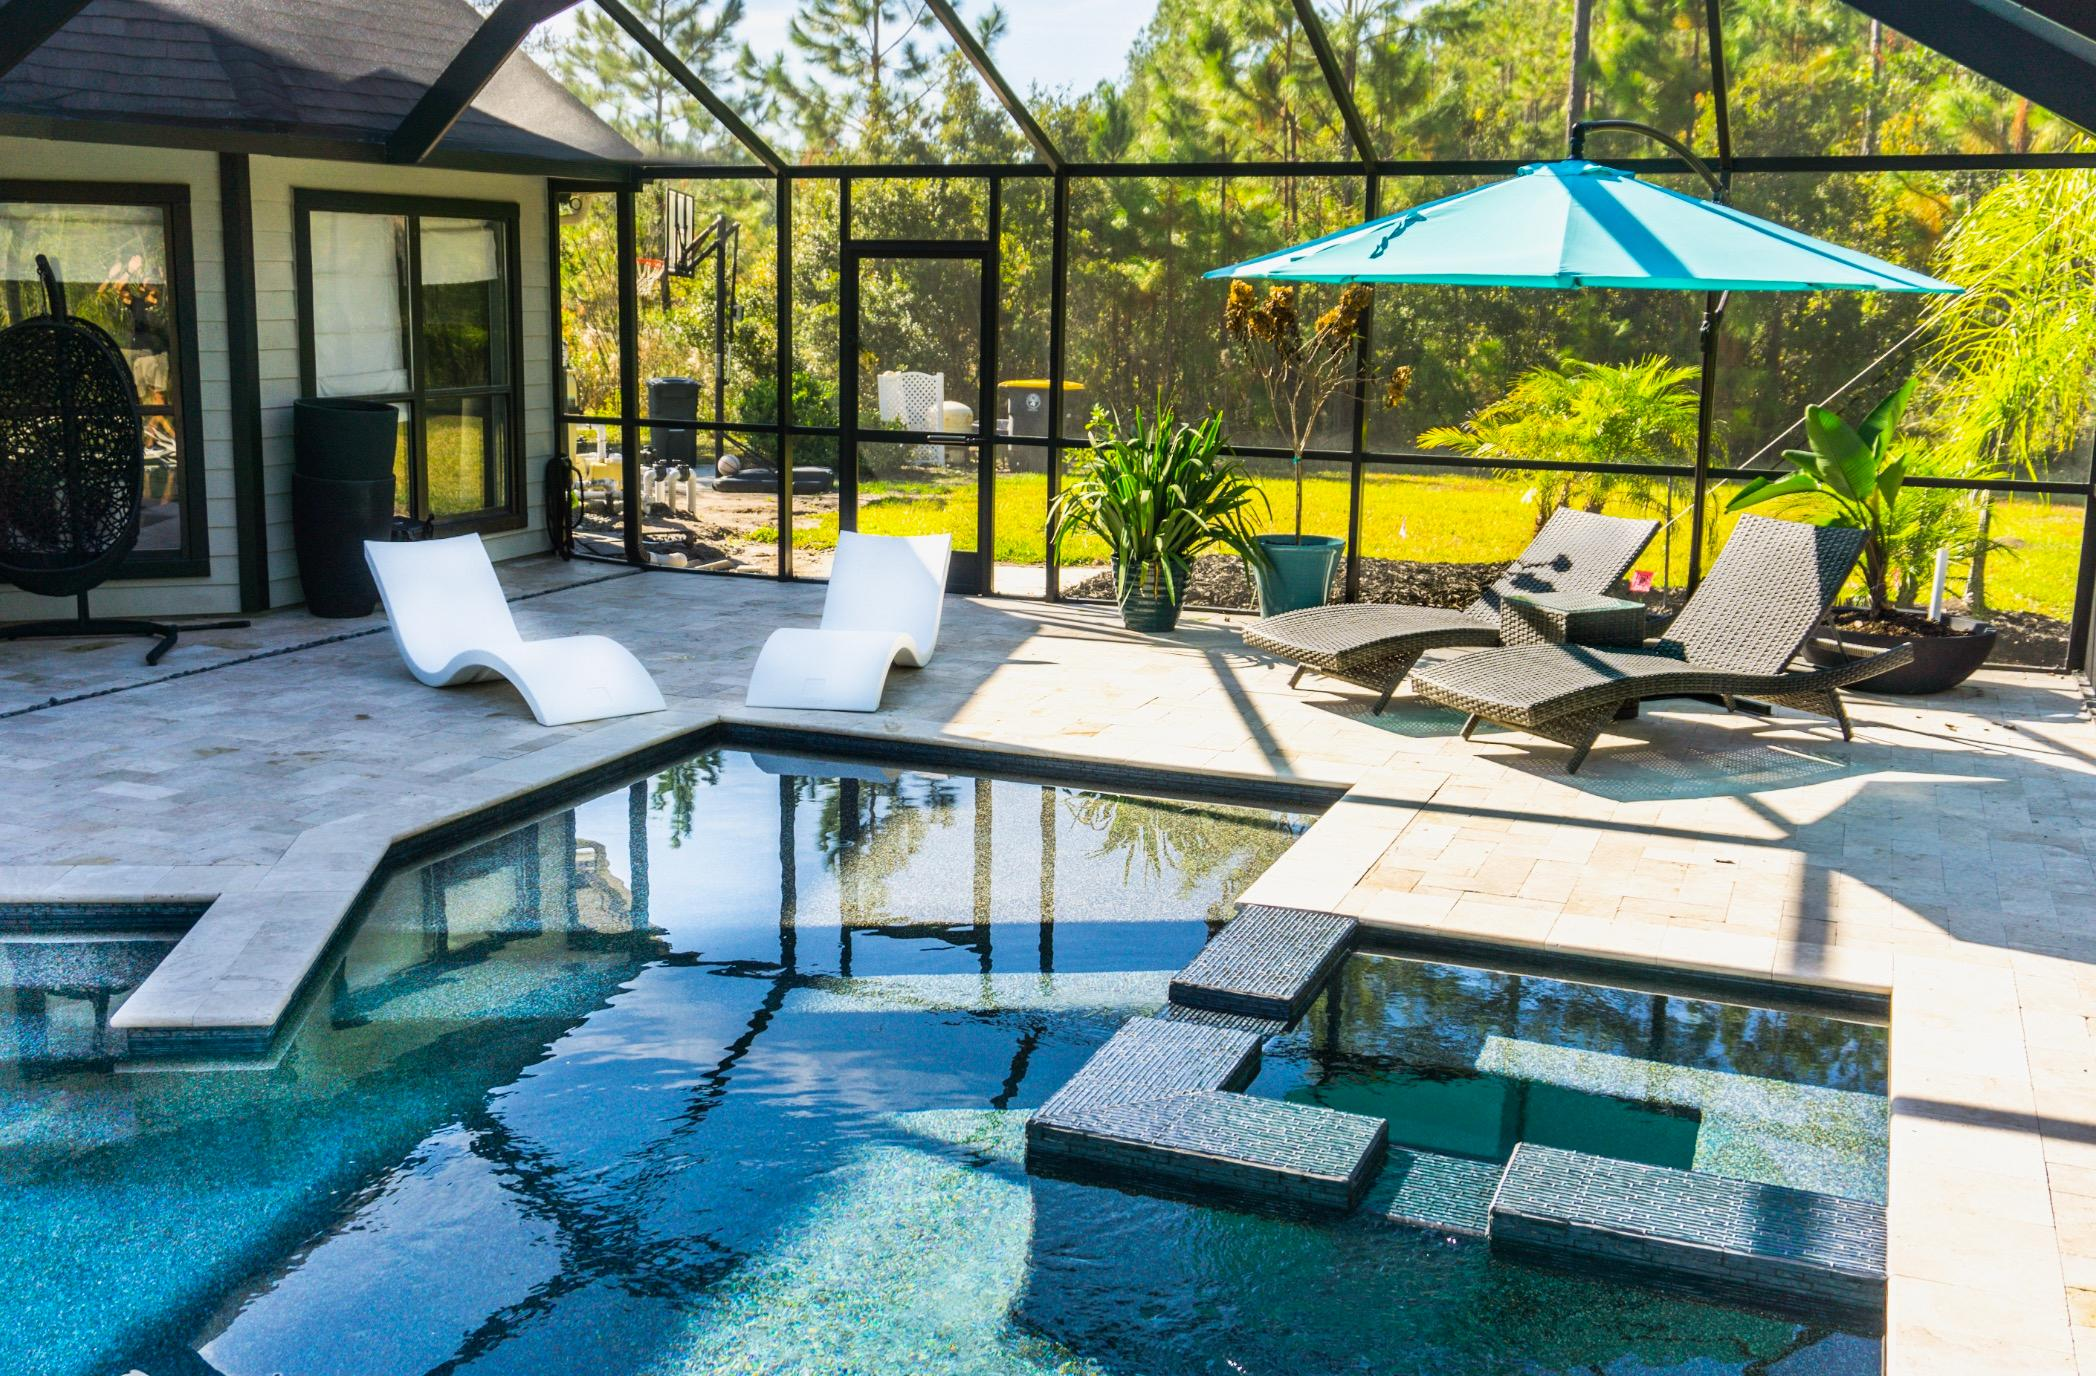 Florida Luxury Pools image 0